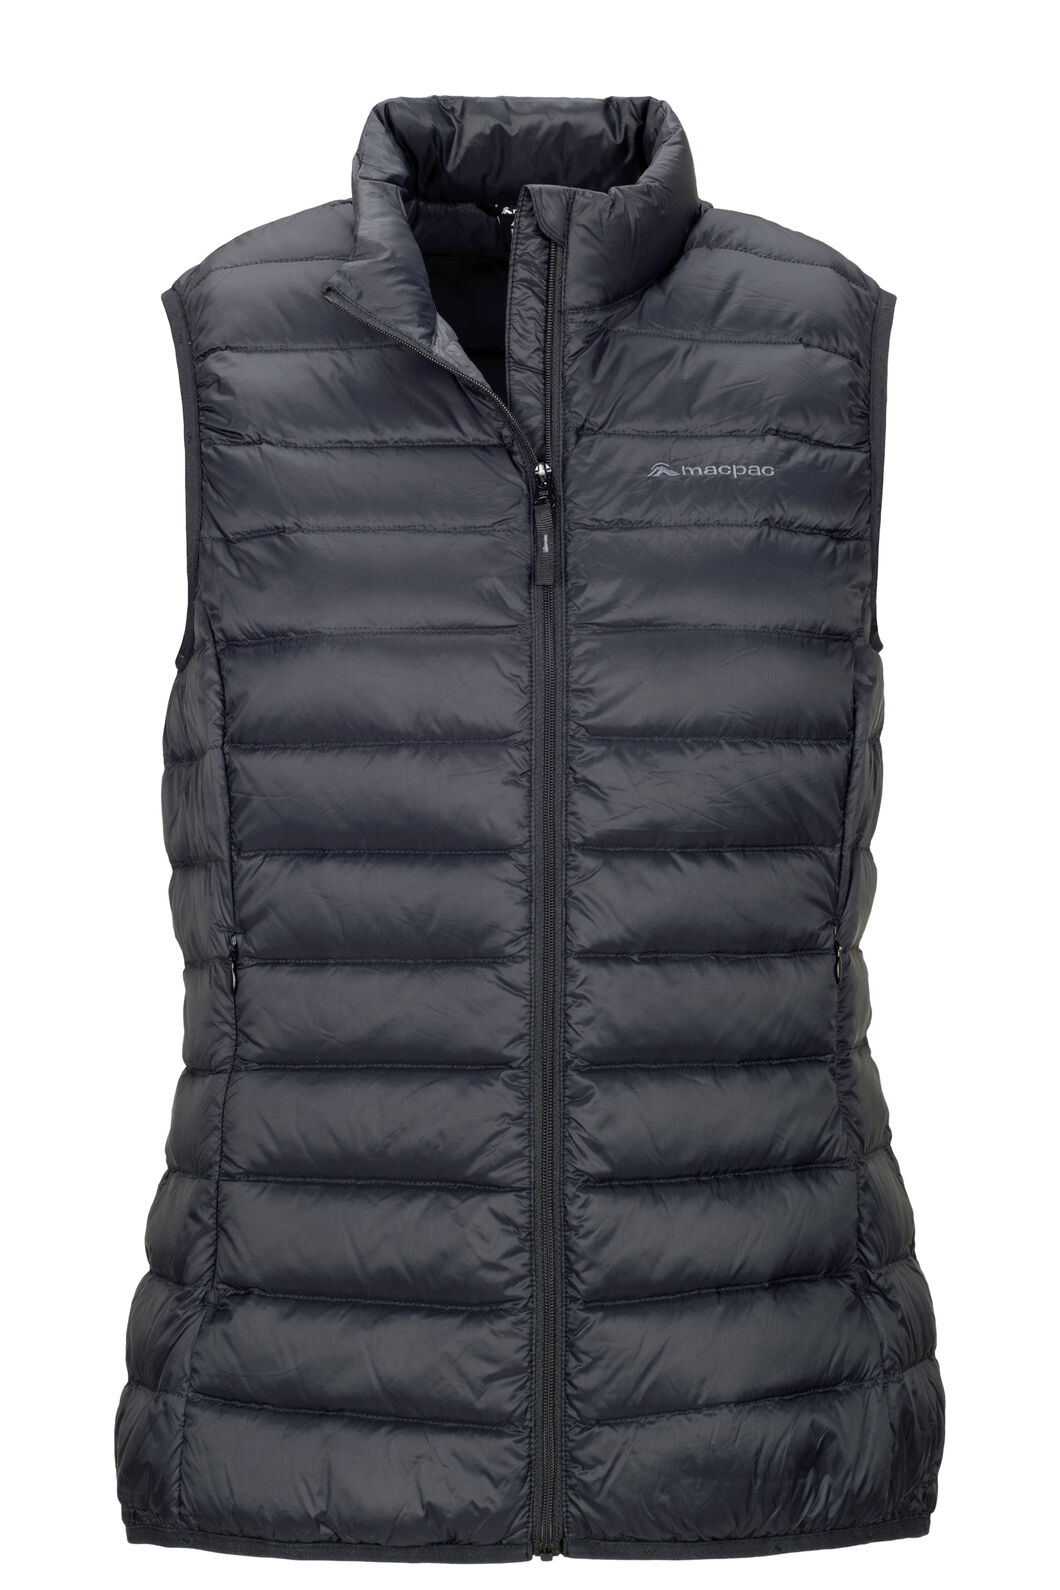 Macpac Uber Light Down Vest — Women's, Black, hi-res